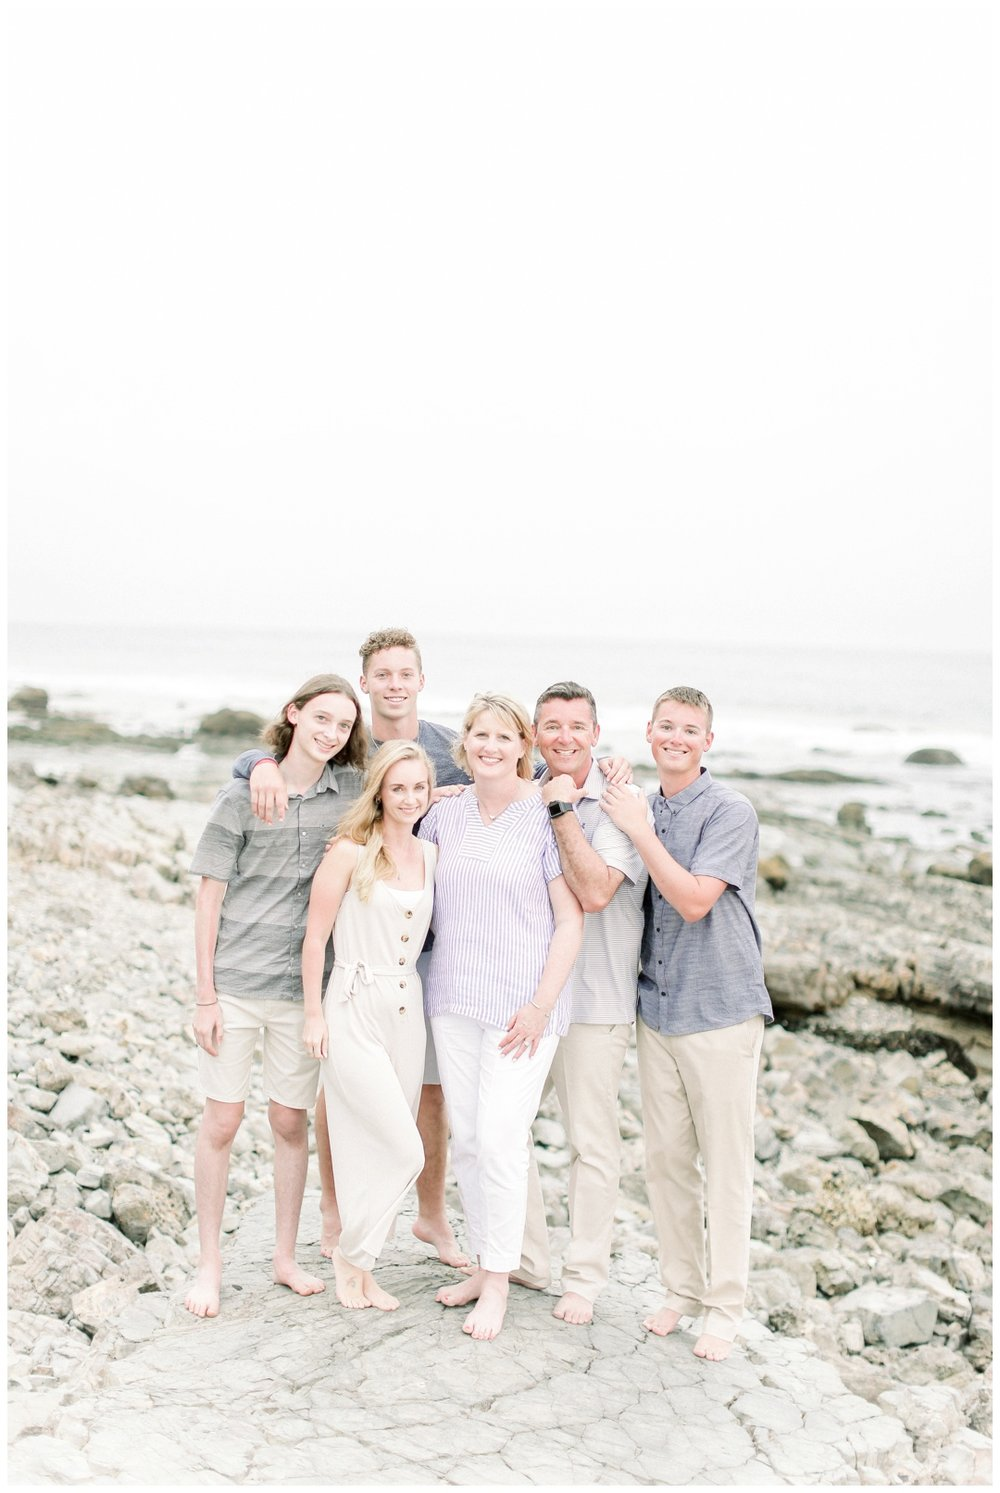 Newport_Beach_Family_Photographer_Orange_County_Family_Photography_Cori_Kleckner_Photography_Orange_County_Family_Photographer_Beach_Family_Session__1230.jpg